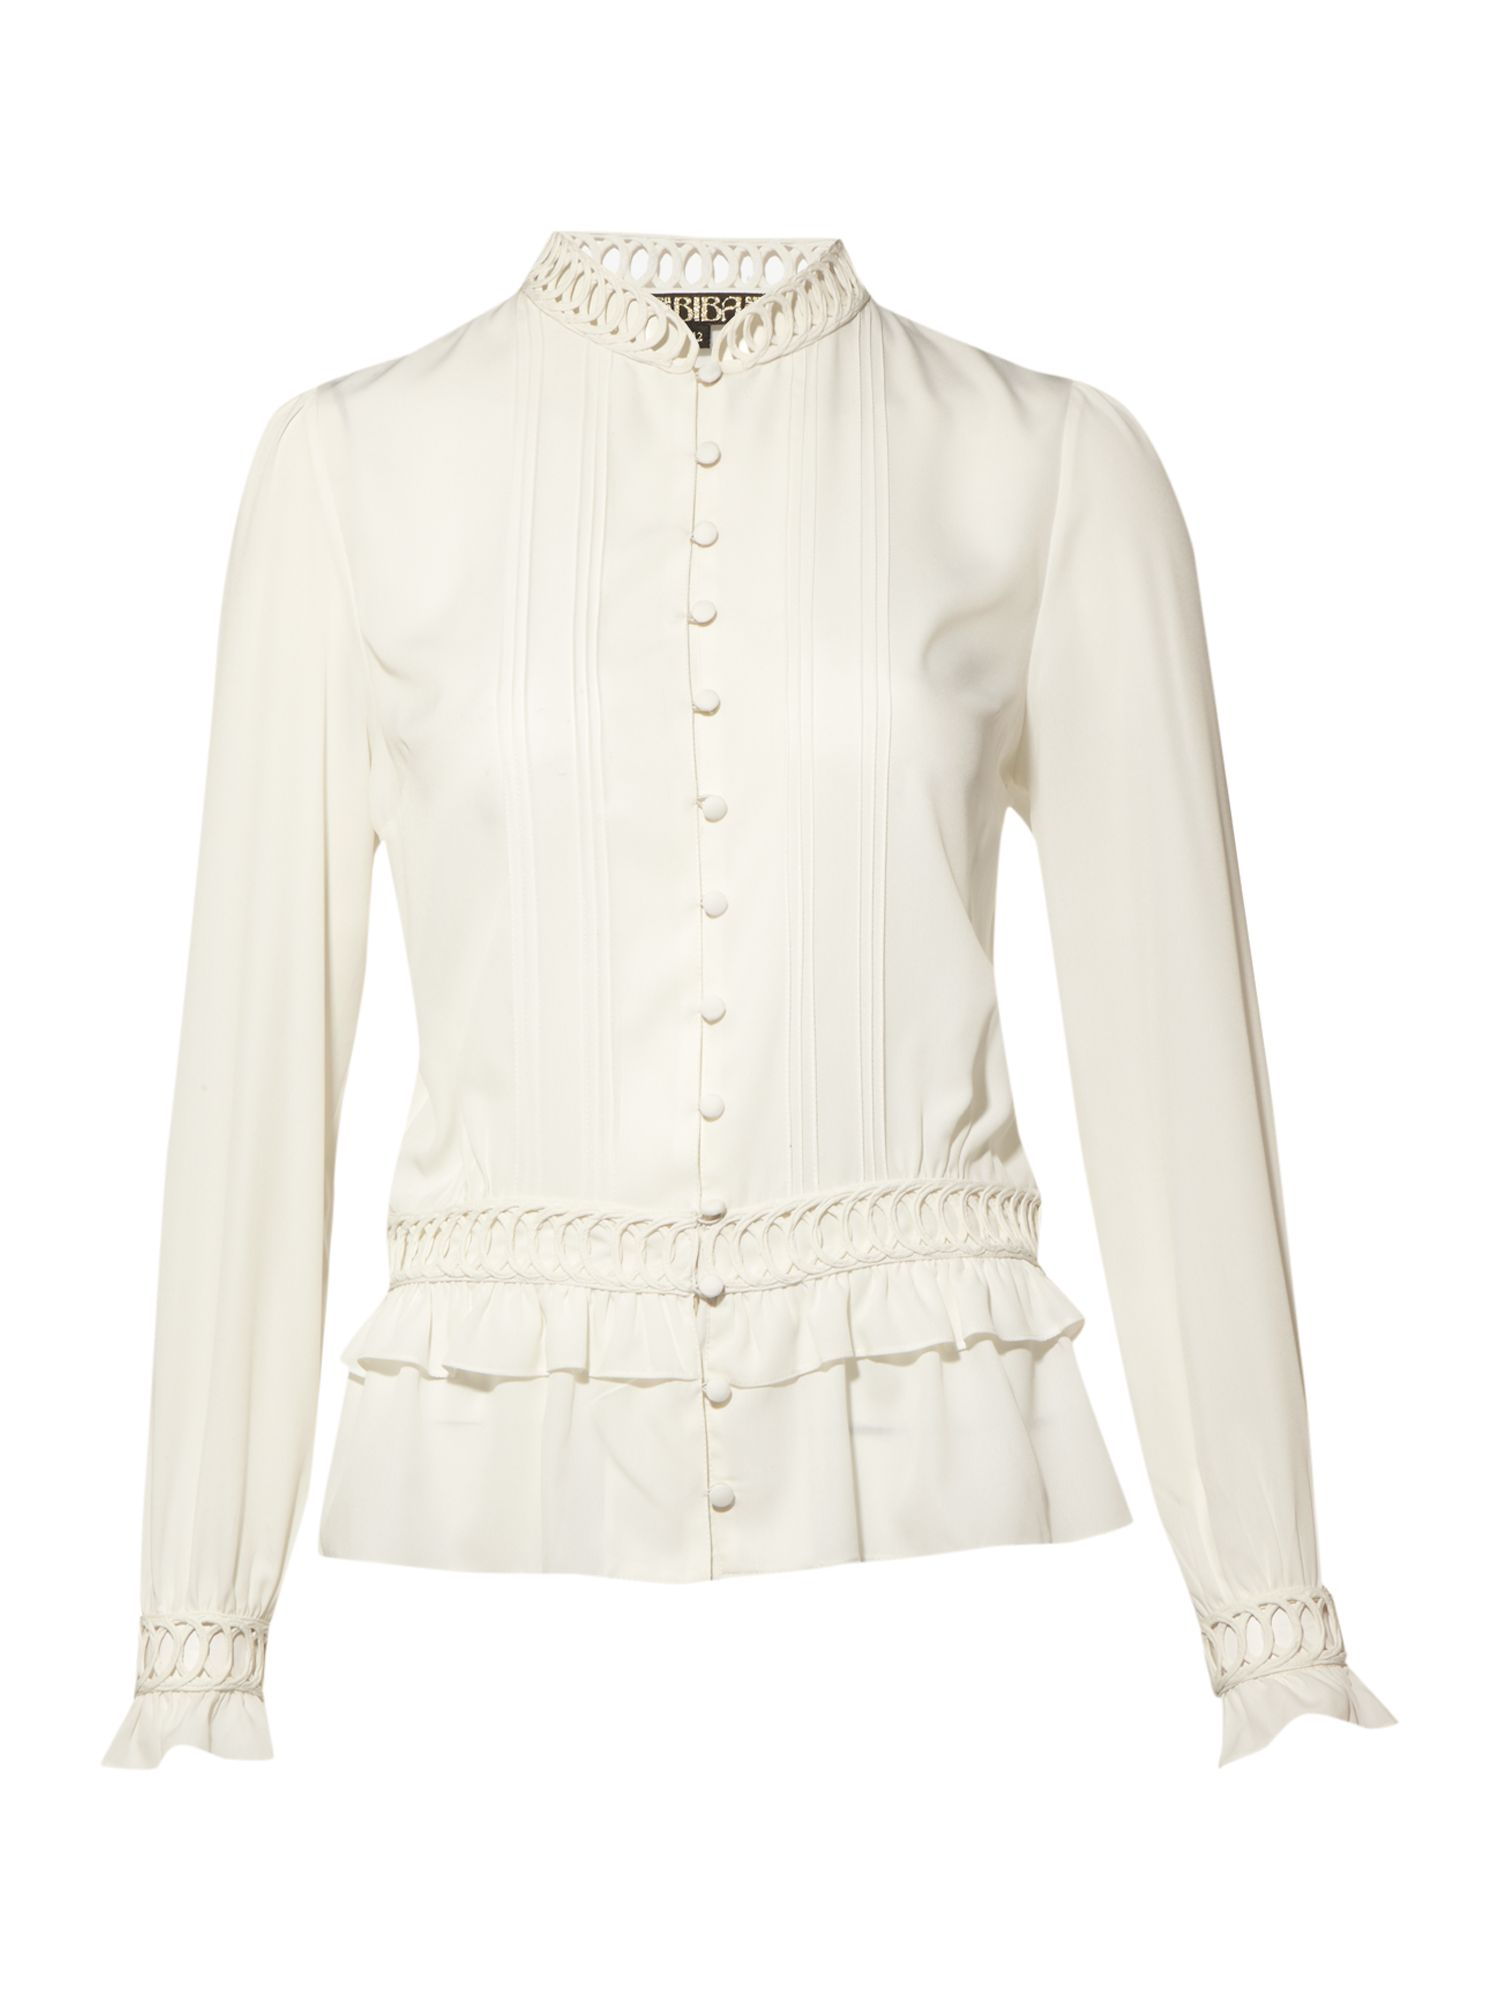 Peplum blouse - Off White 12,12,12,12